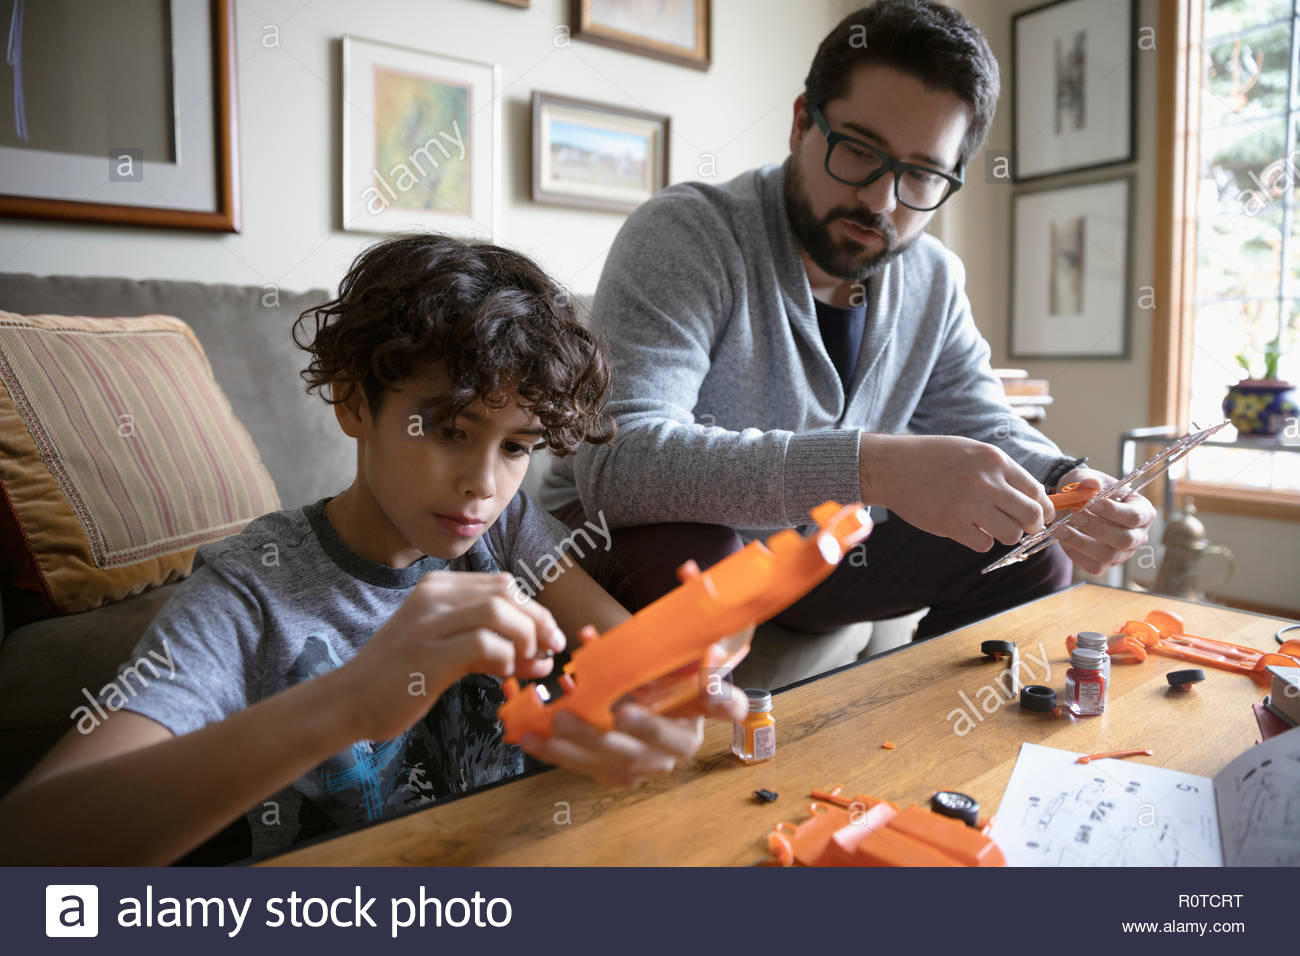 Latinx father and son assembling model car - Stock Image